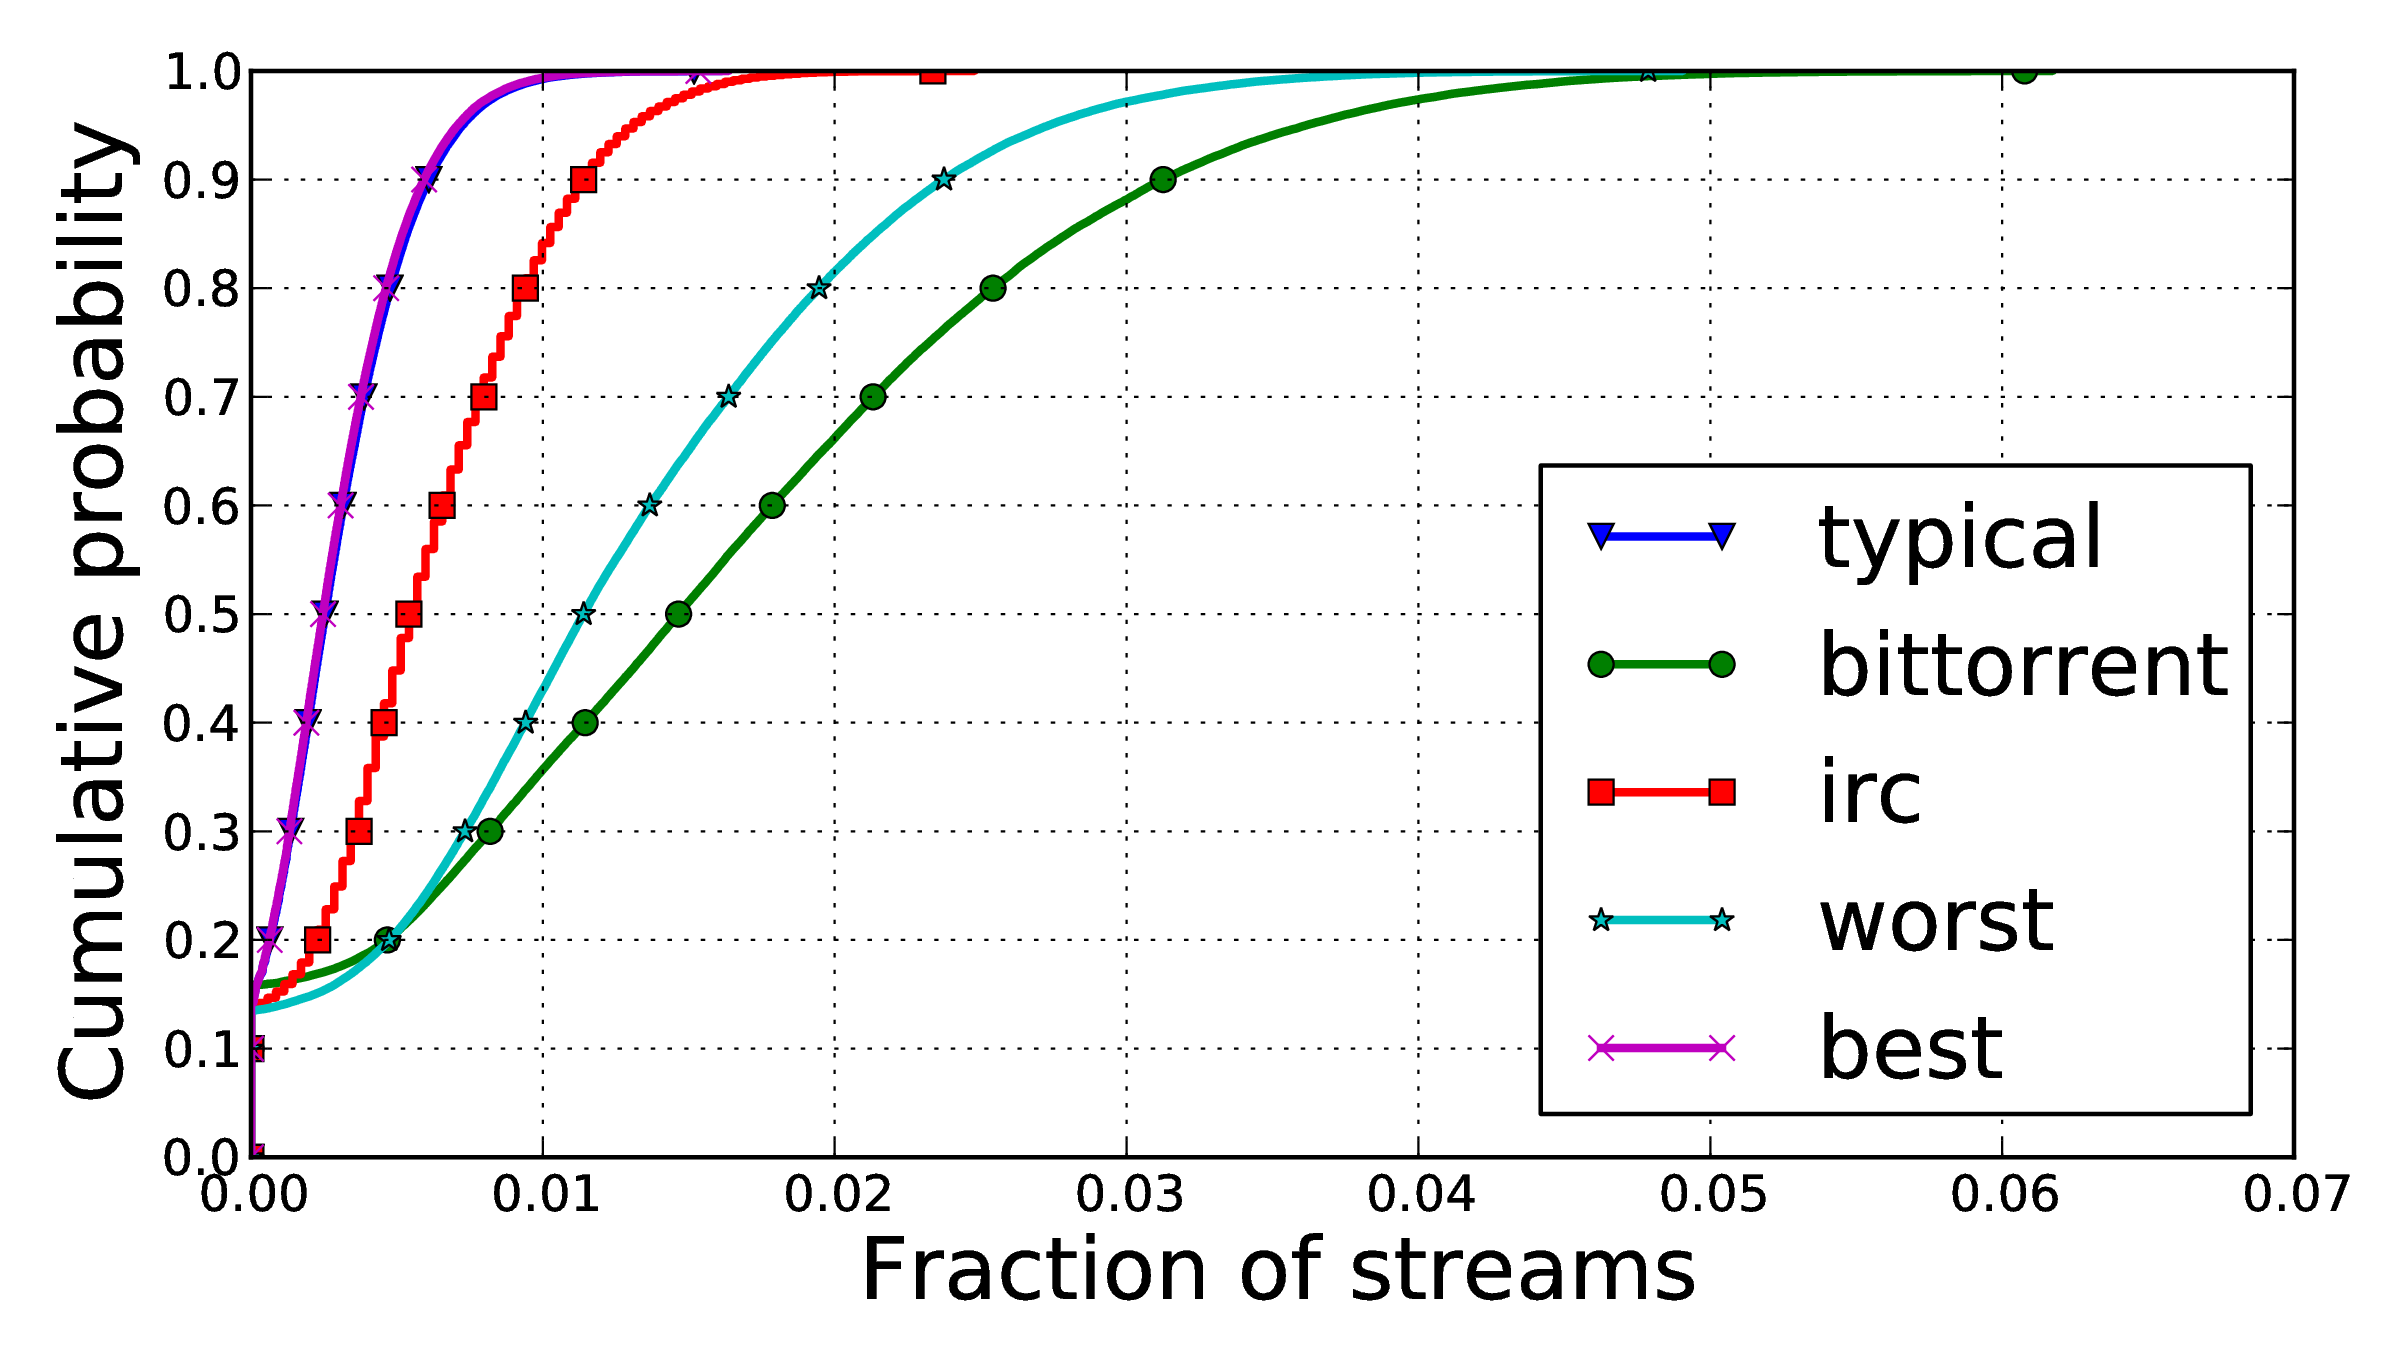 Creating many streams increases the number of opportunities to choose malicious relays, and thus the speed at which that occurs, while connecting to destinations that are disallowed by many exits